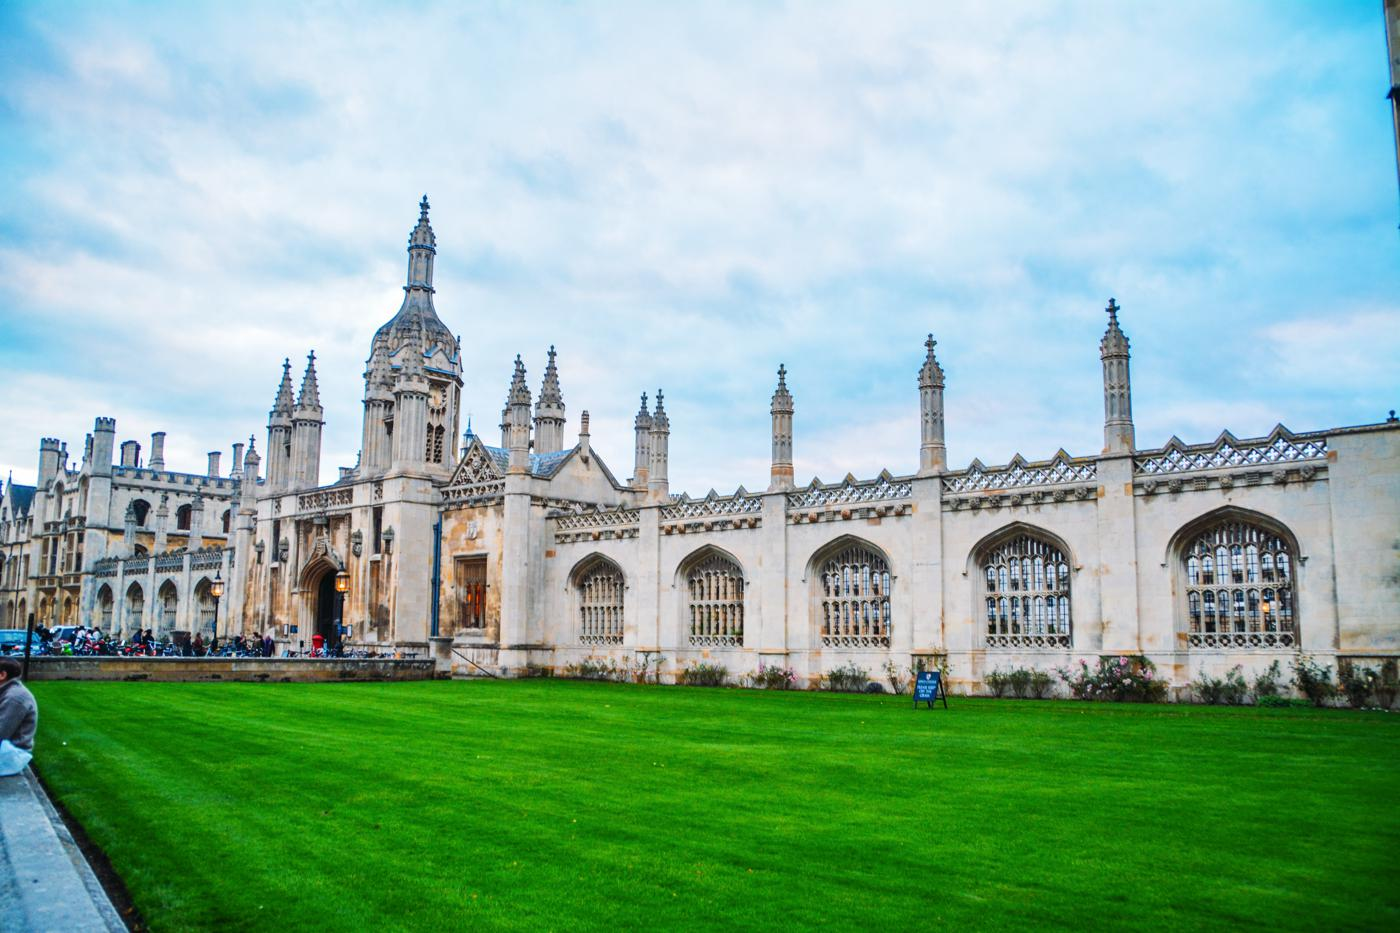 The University of Cambridge, Graduation, Senate House, Cambridge, England (11)